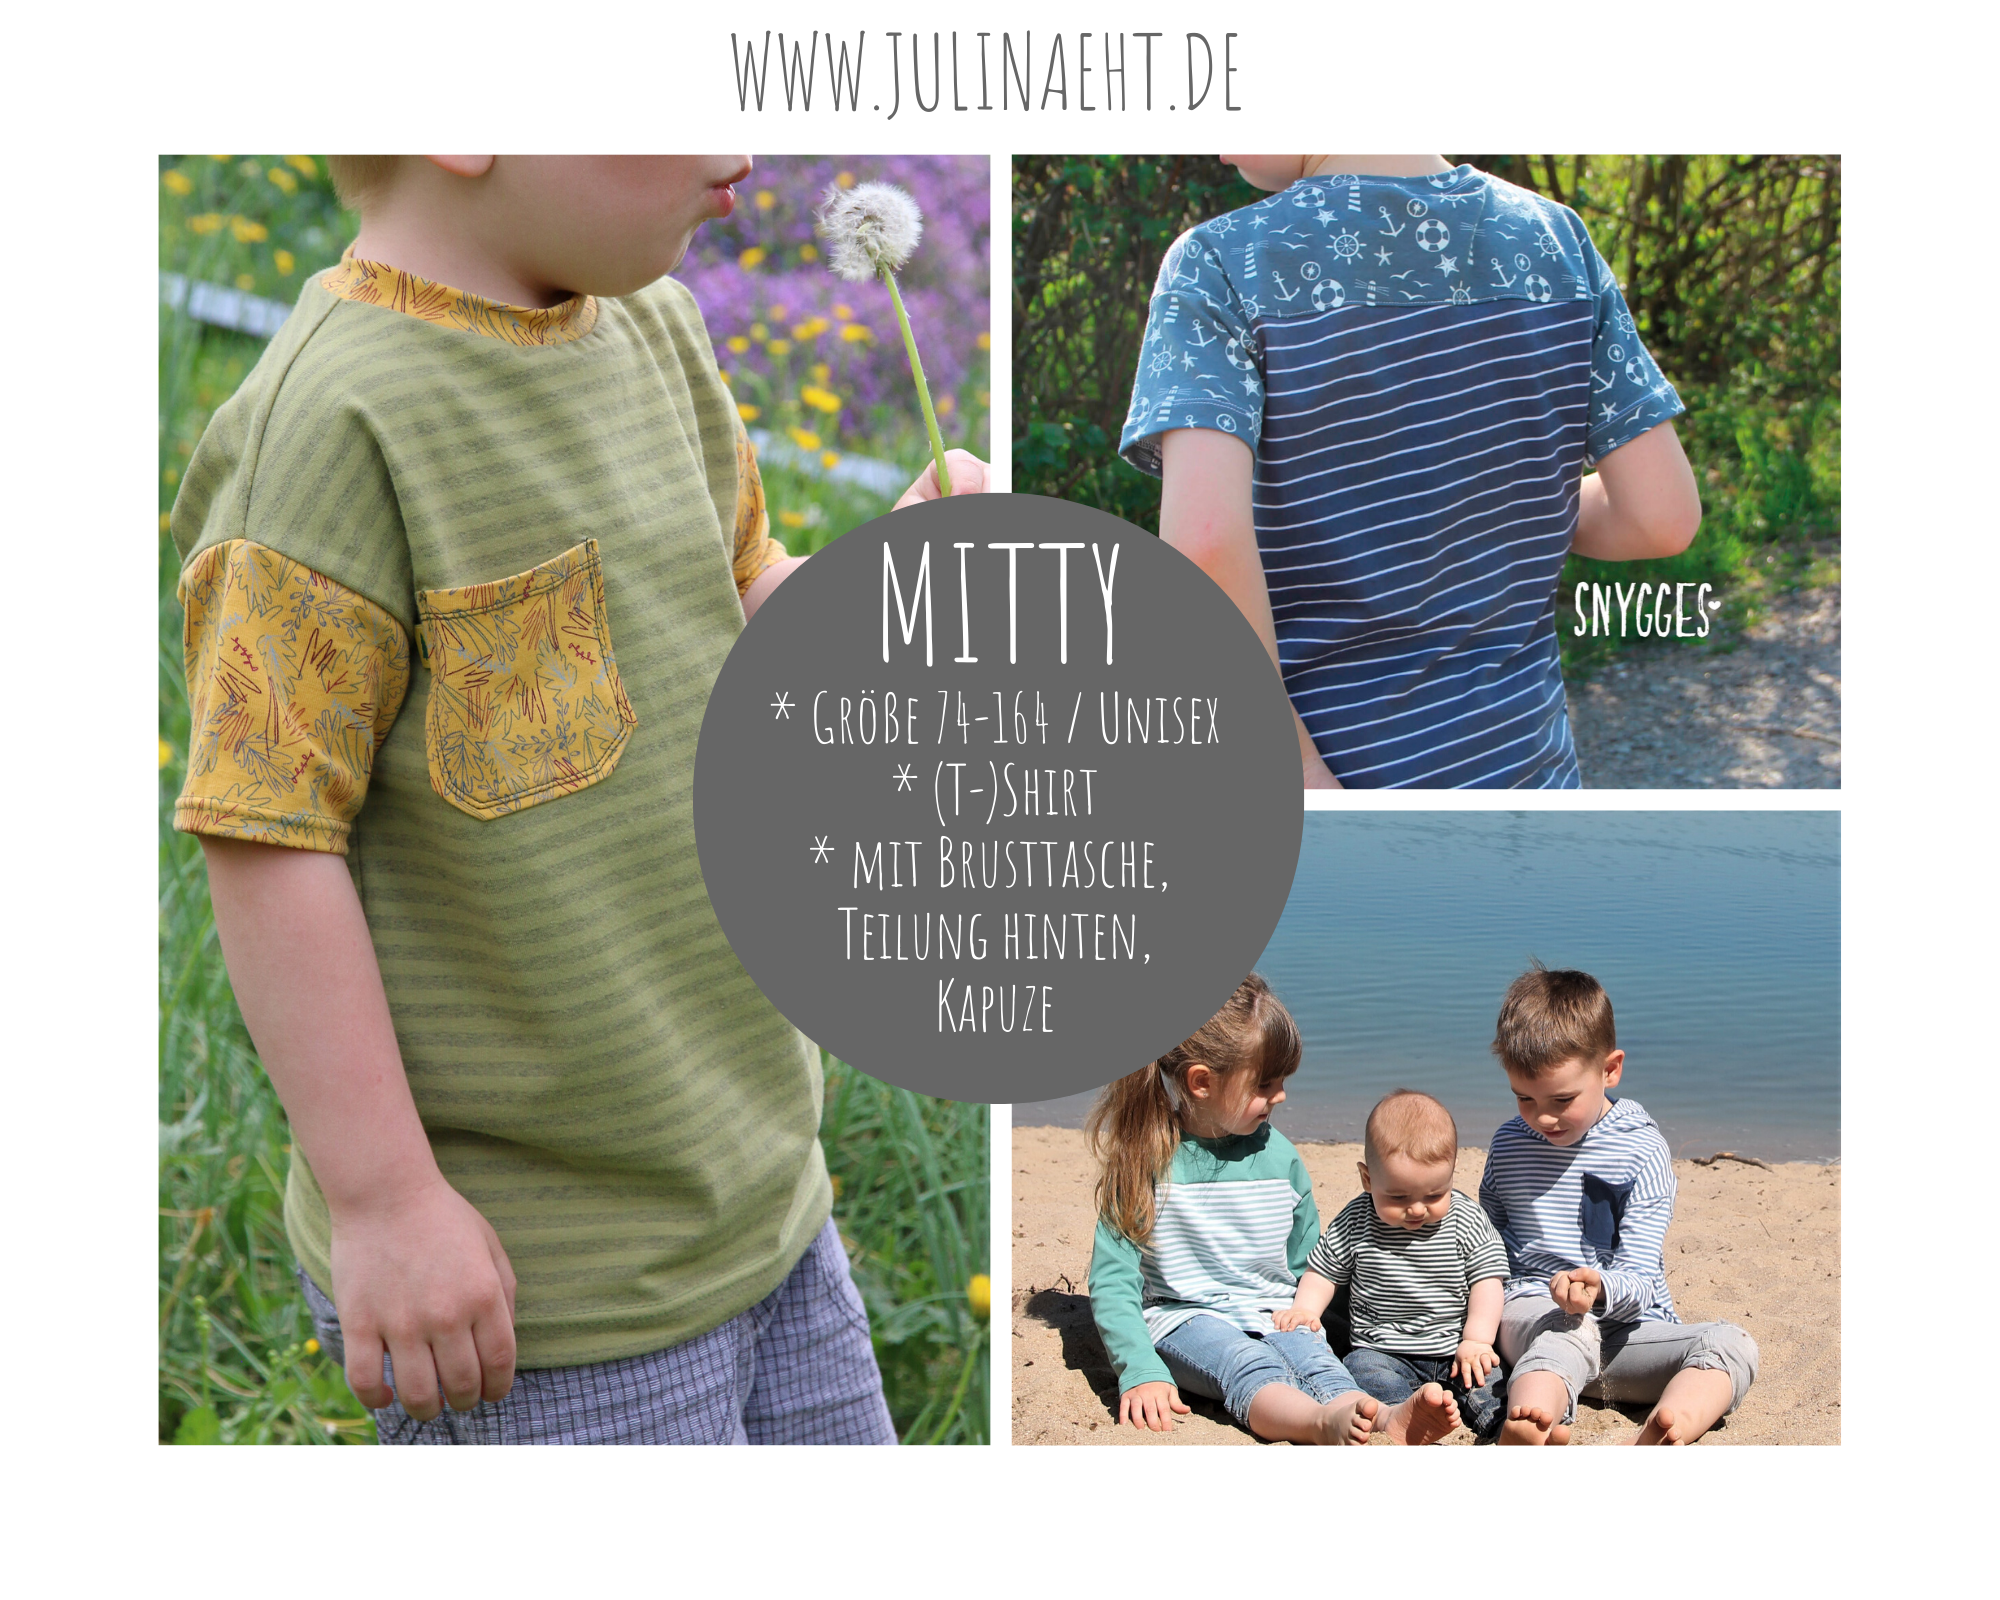 Shirt Mitty